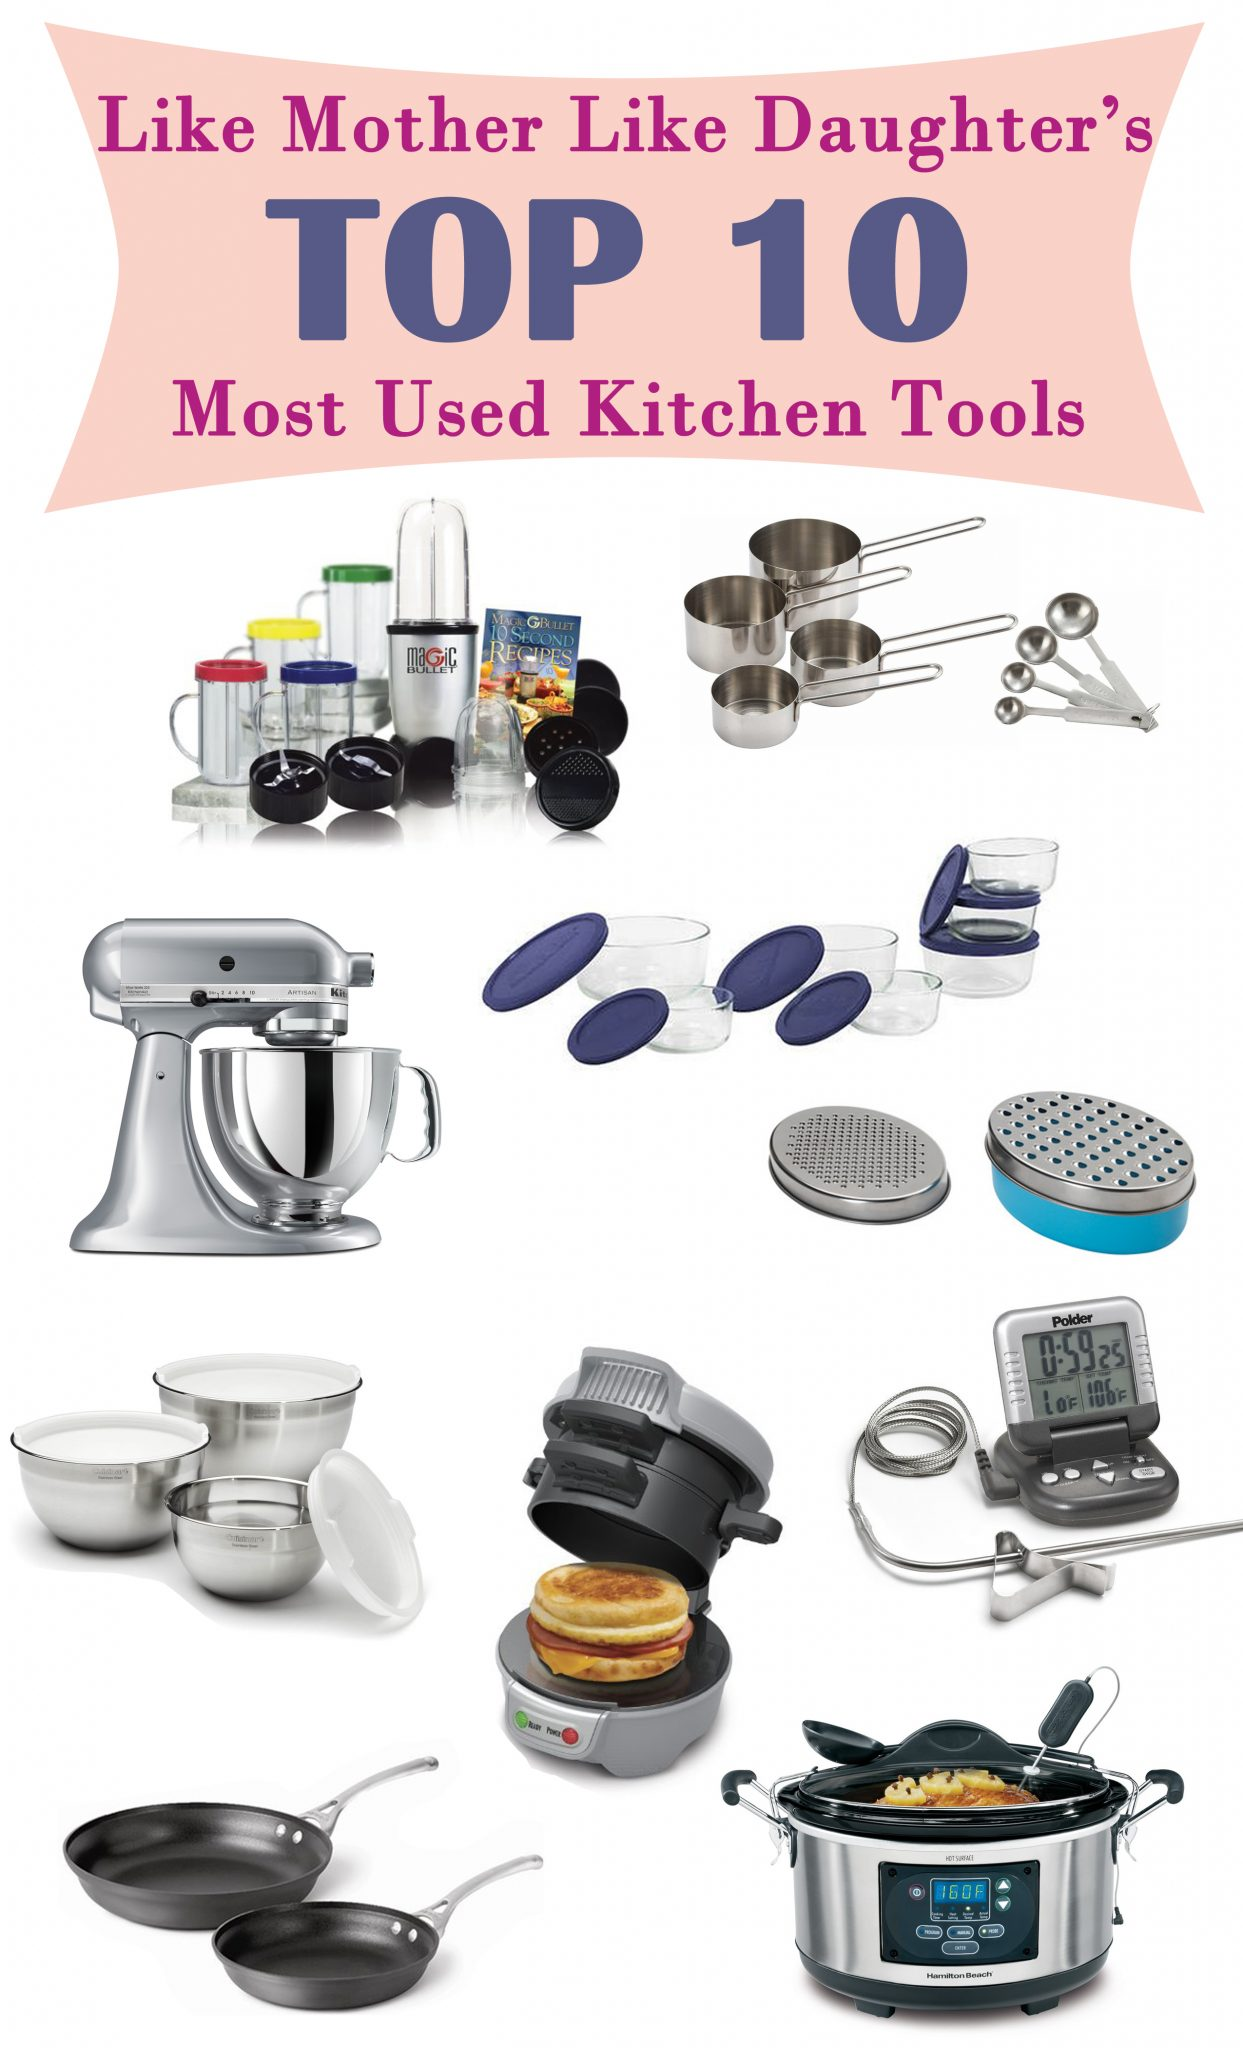 Kitchen Tools List top 10 kitchen tools used in lmld kitchens – like mother, like